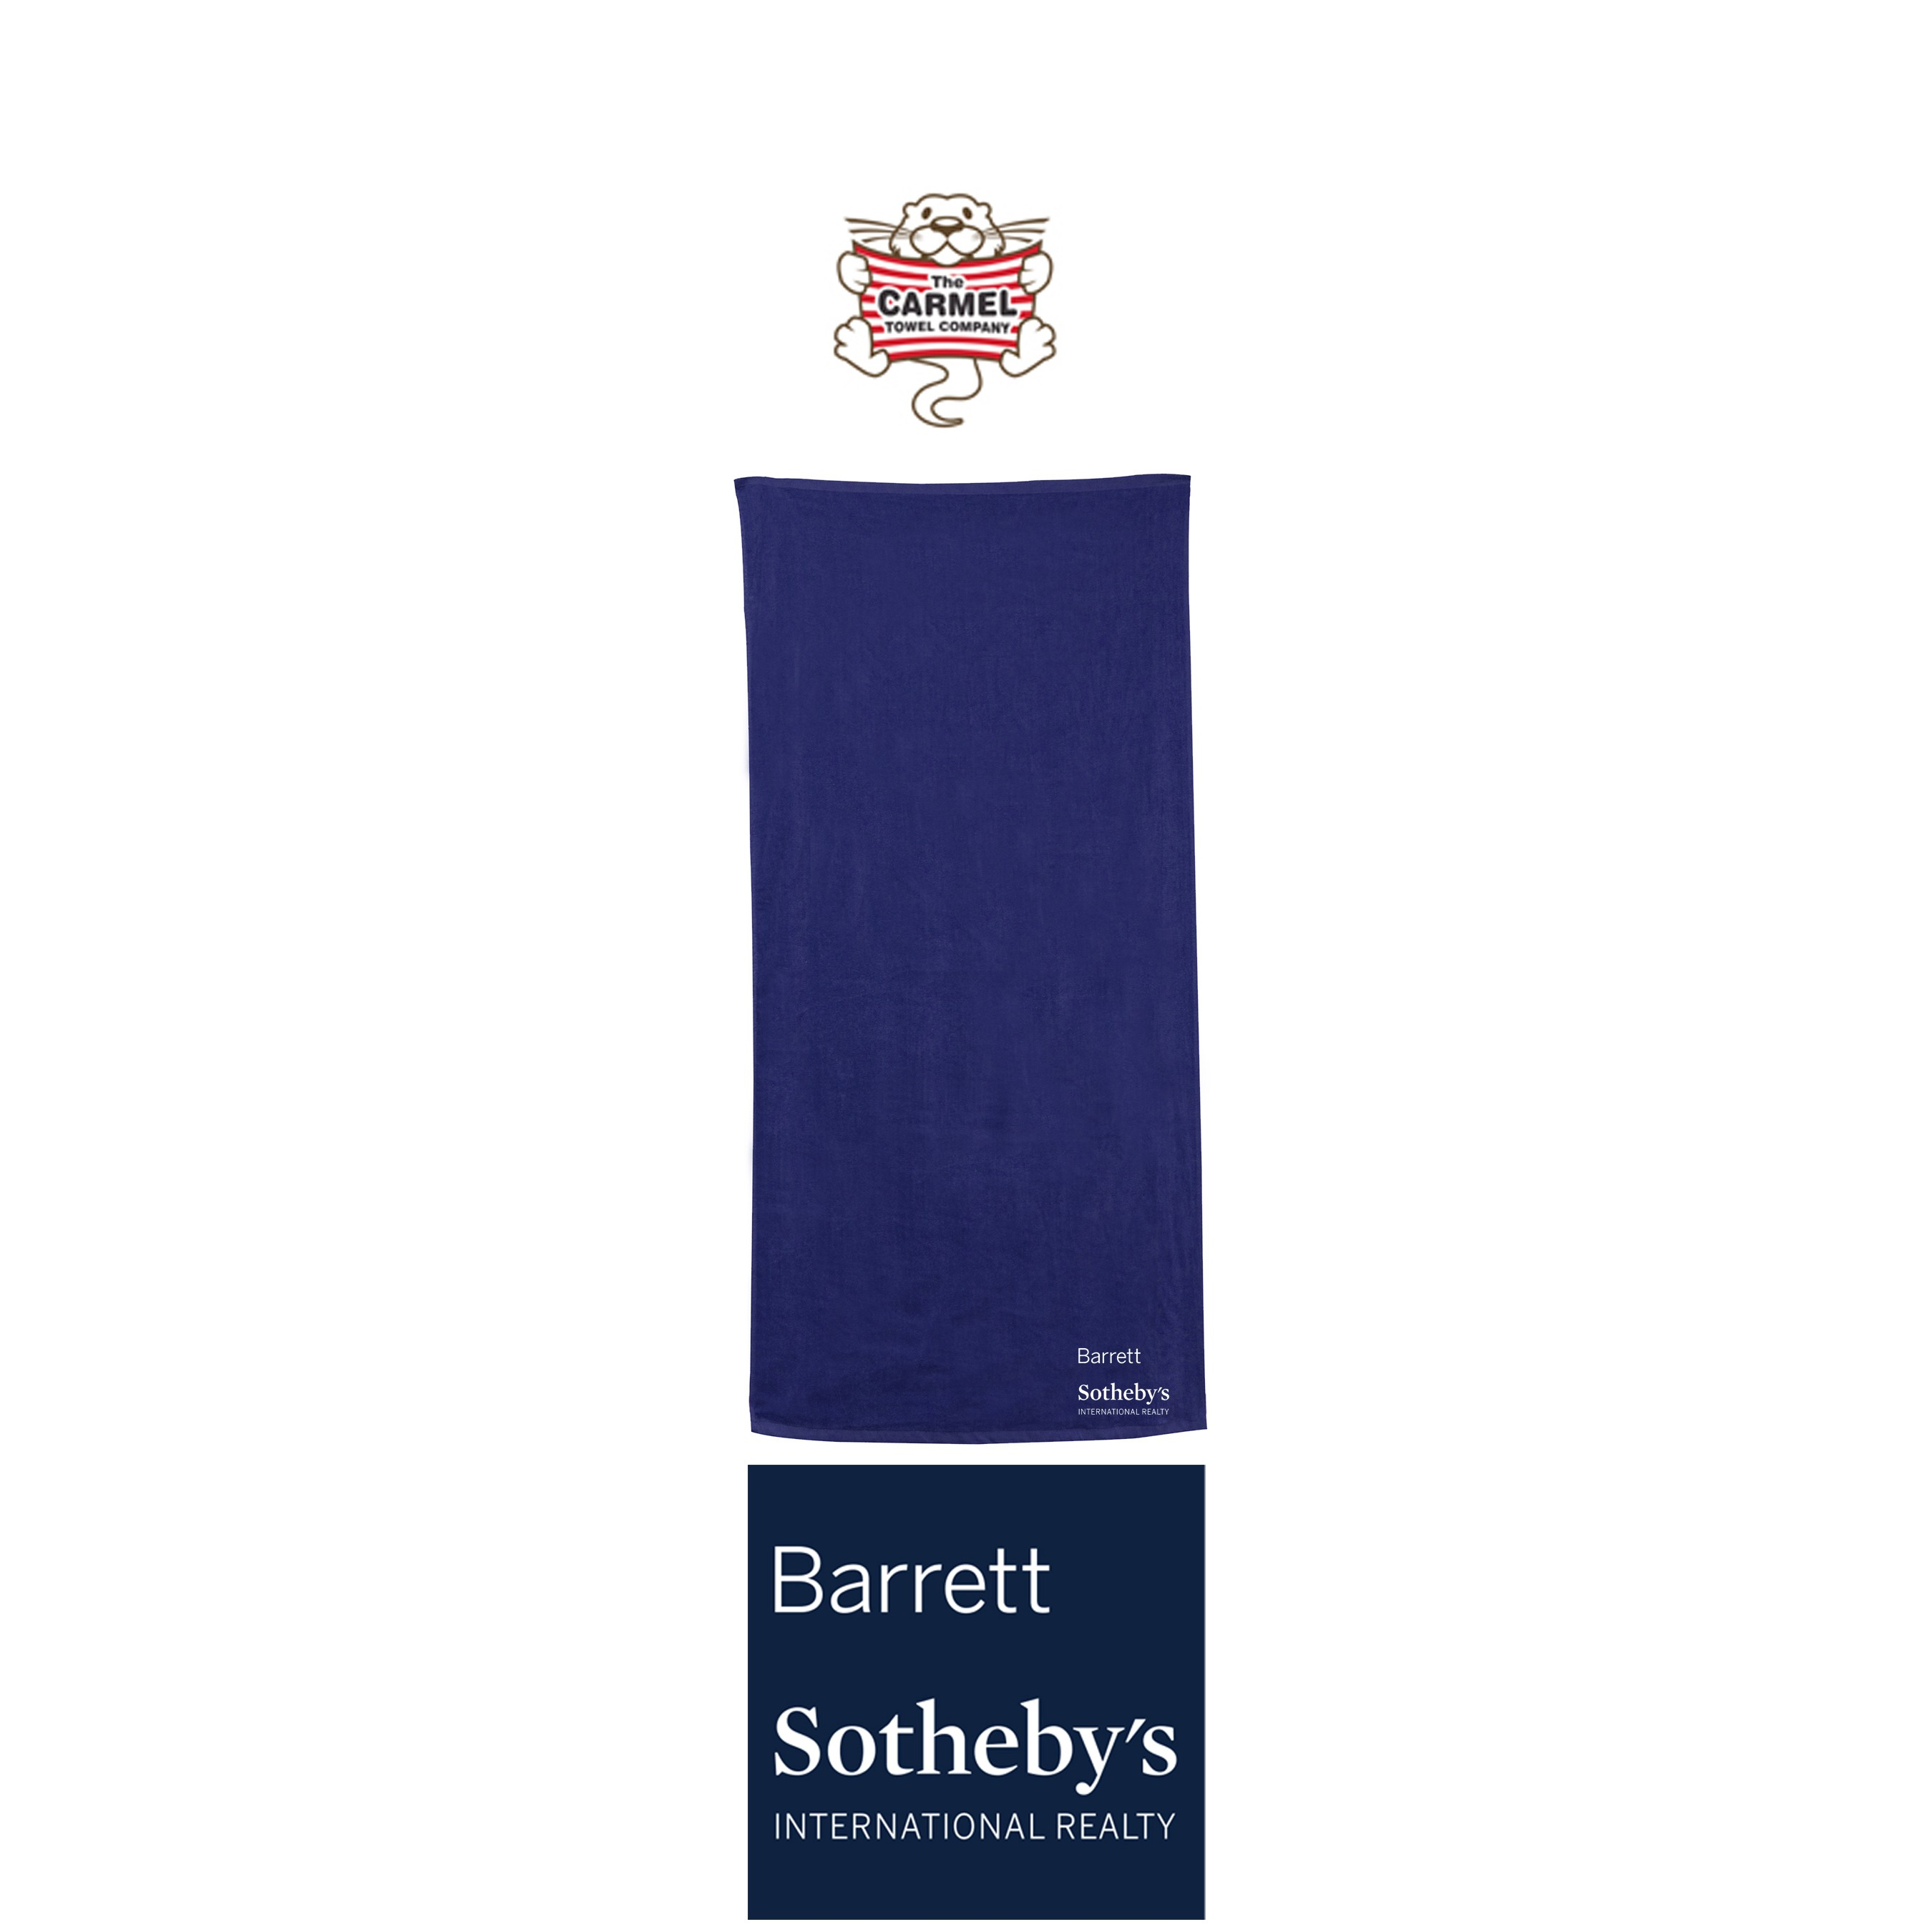 Barrett Sotheby's Carmel Towel Company Classic Beach Towel, Embroidered